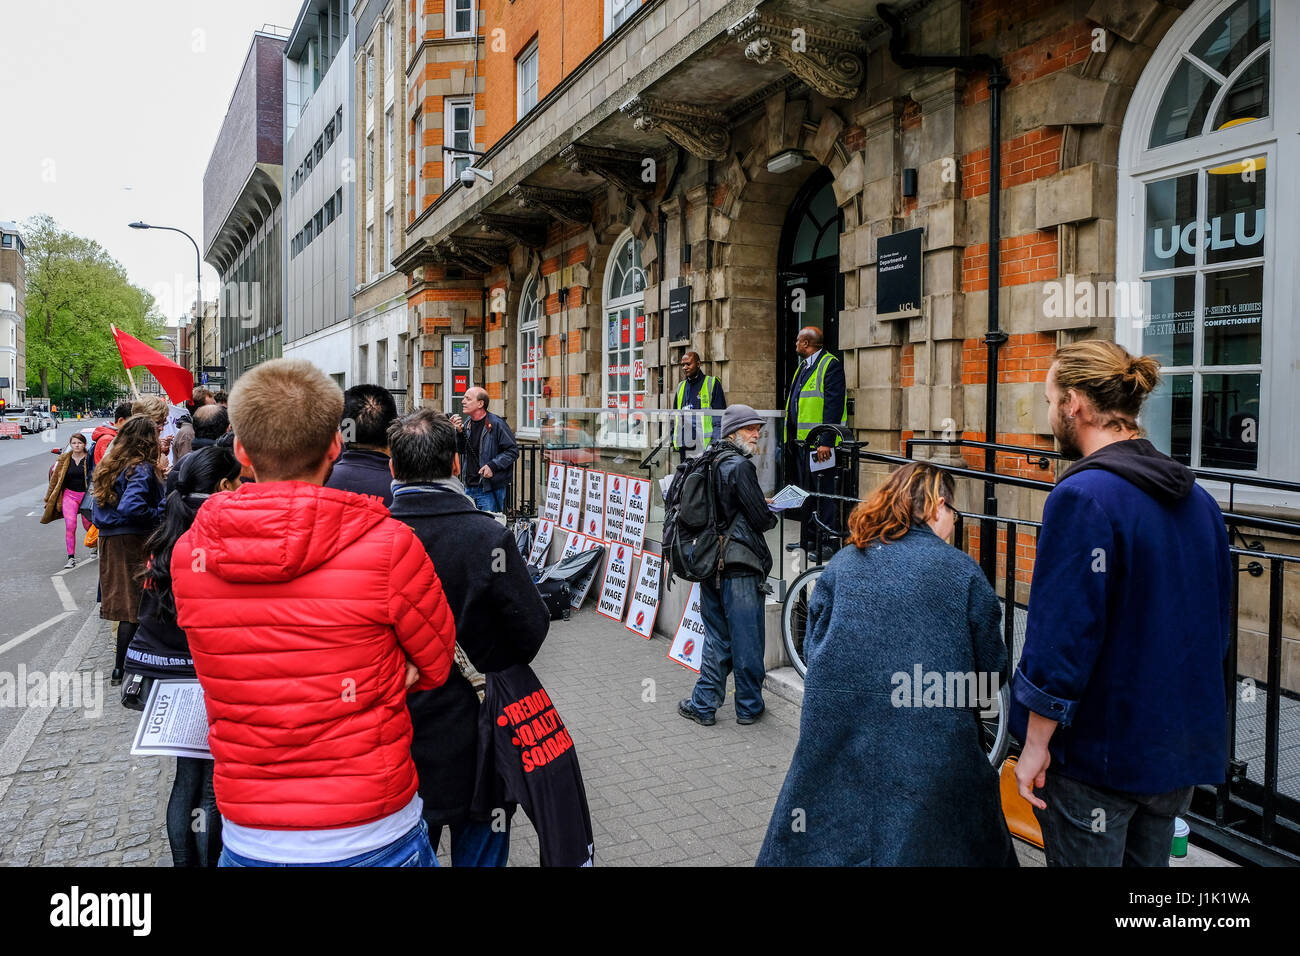 London, UK. 21st April, 2017. Staff of Univeristy College London protest for fair pay outside the Union building Stock Photo